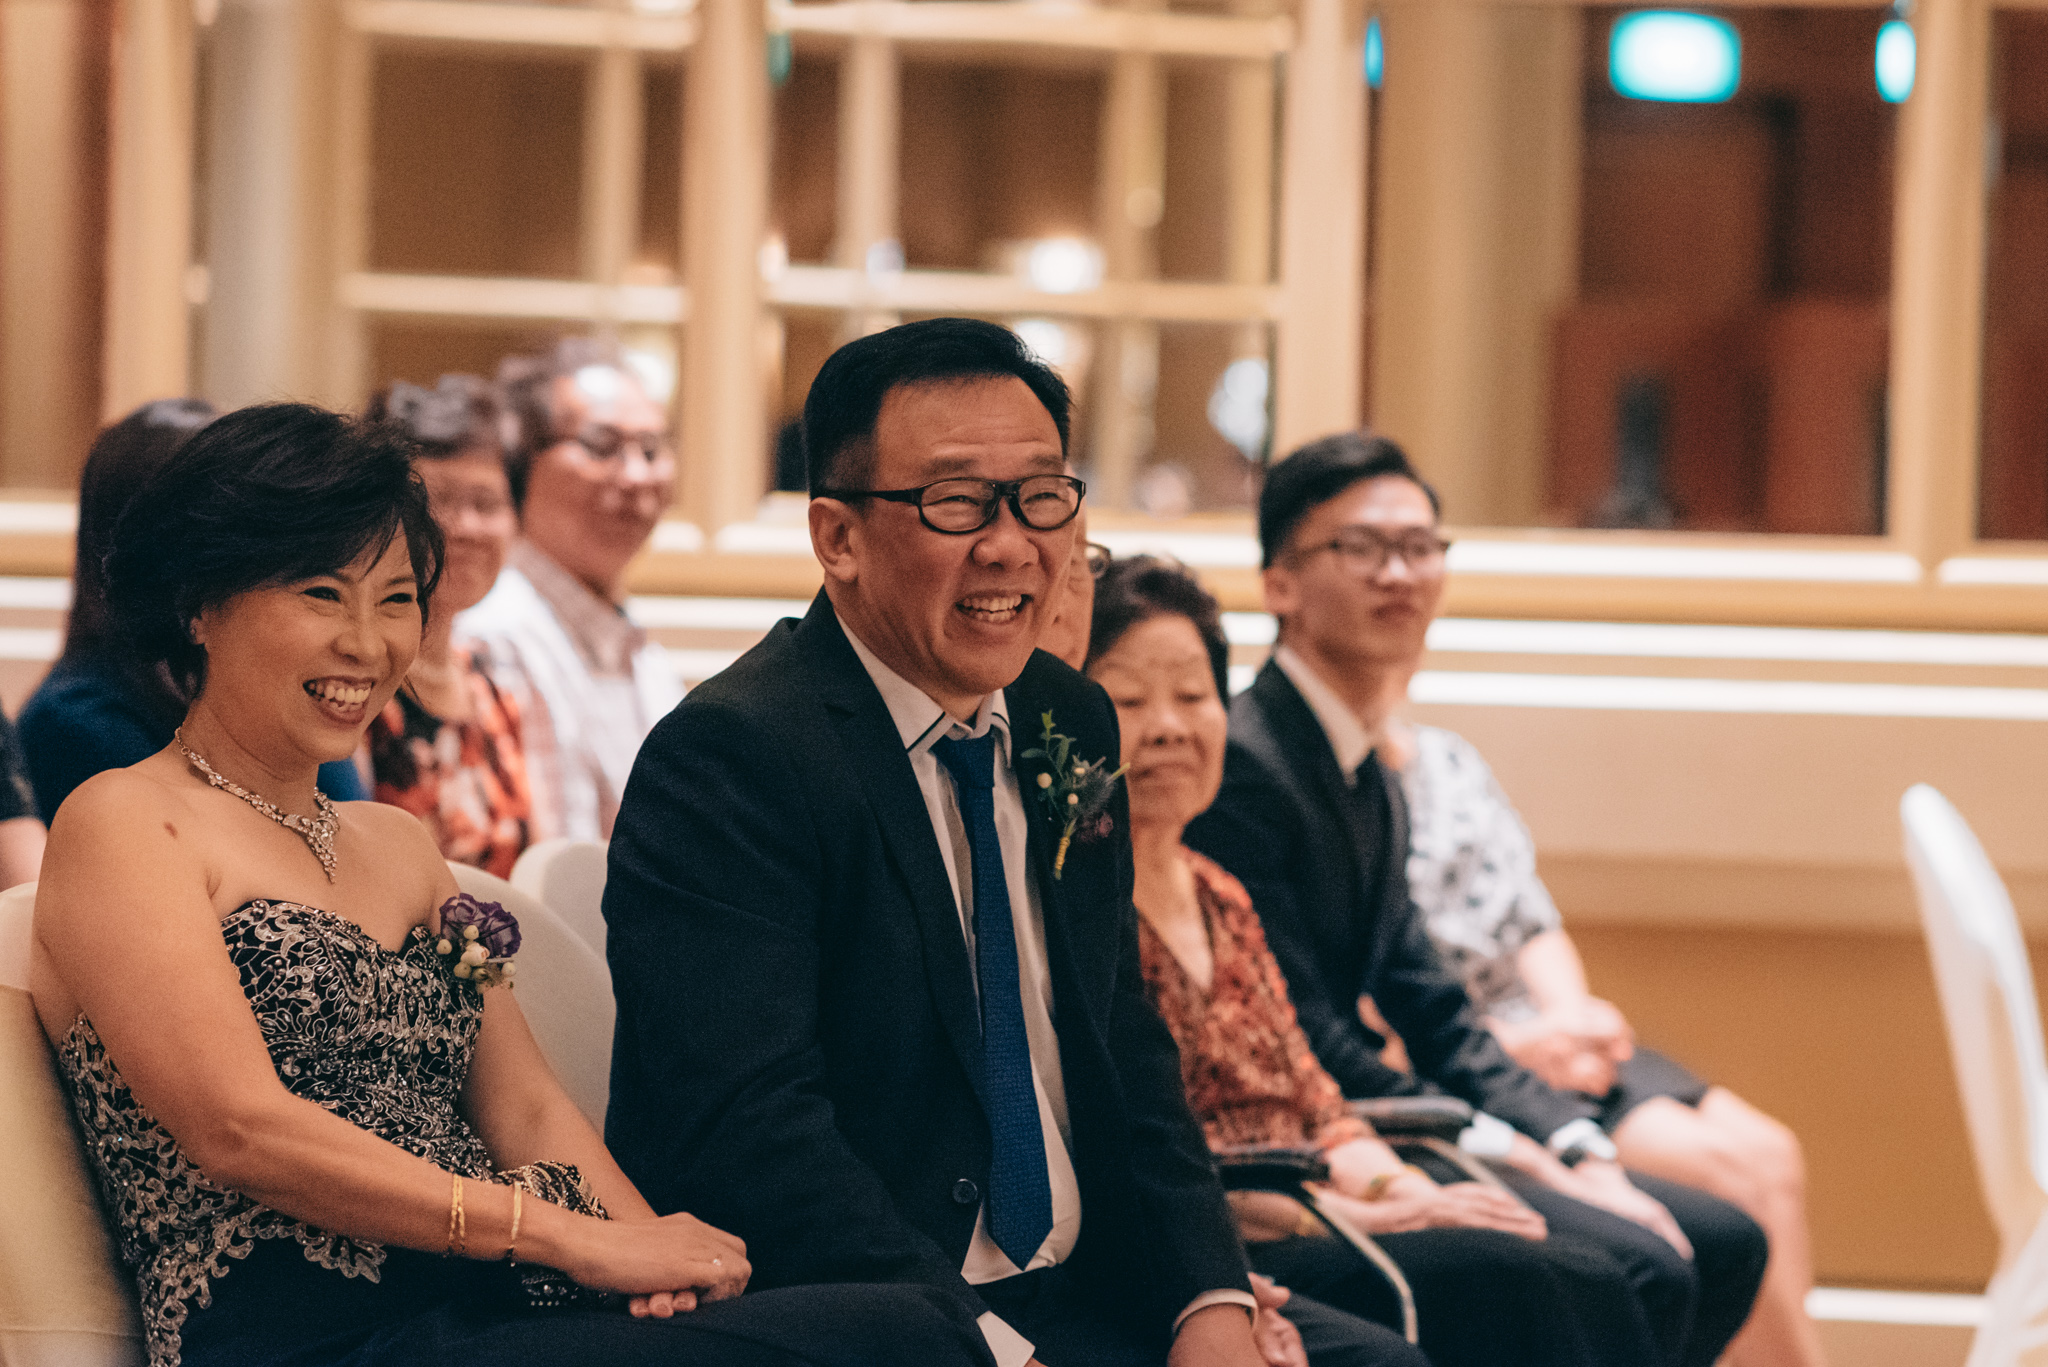 Eunice & Winshire Wedding Day Highlights (resized for sharing) - 137.jpg